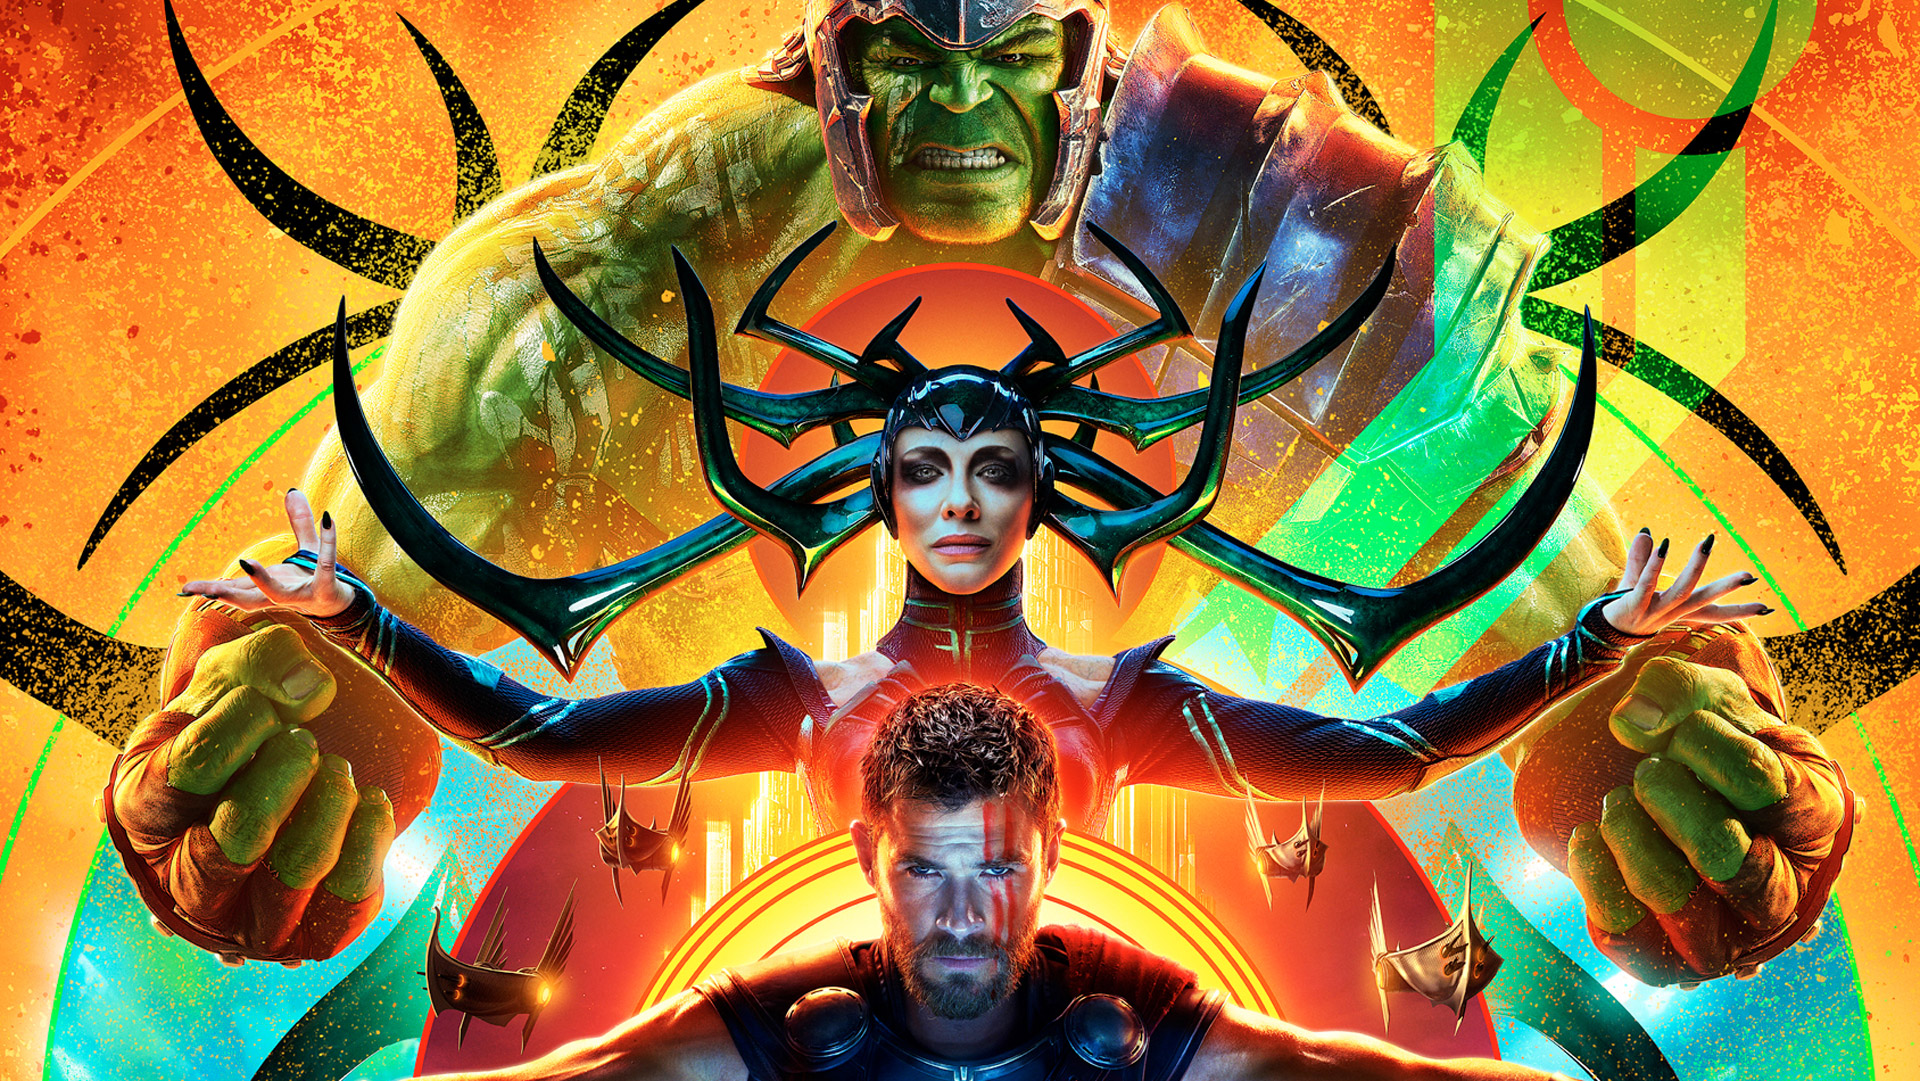 Hulk Hela Thor In Thor Ragnarok Hd Movies 4k Wallpapers Images